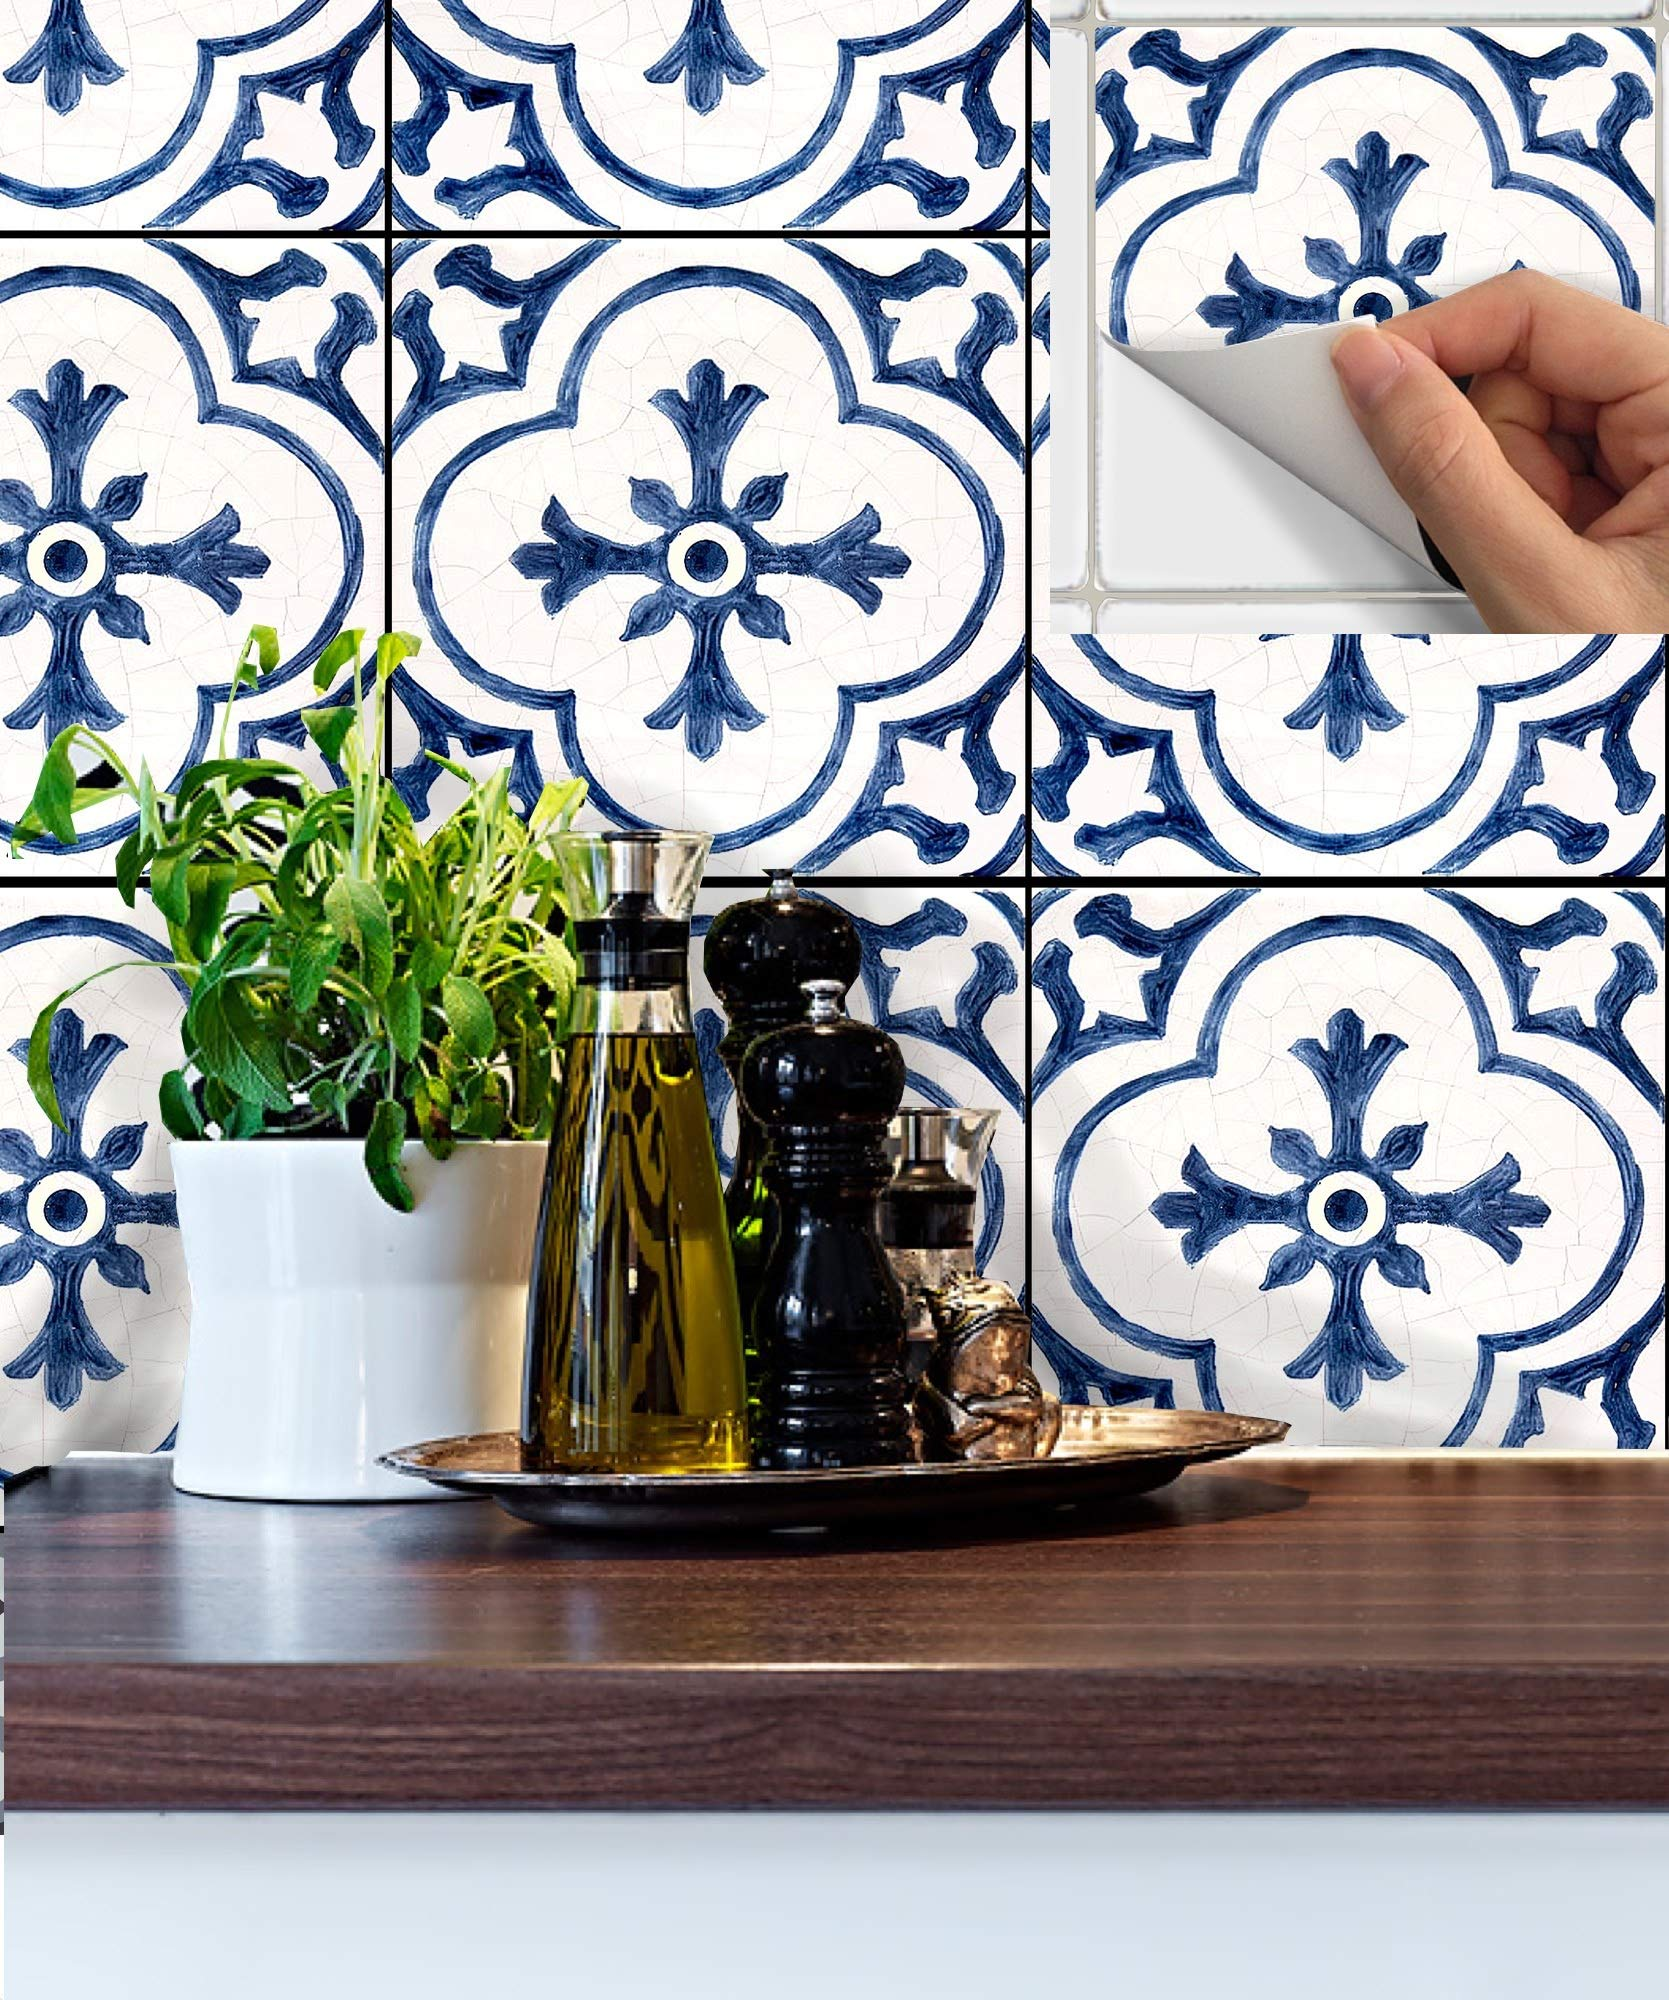 SnazzyDecal Tile Stickers Antique Dutch 40pc 4-1/4in Peel and Stick for Kitchen and Bath BW002-4Q by SnazzyDecal (Image #4)